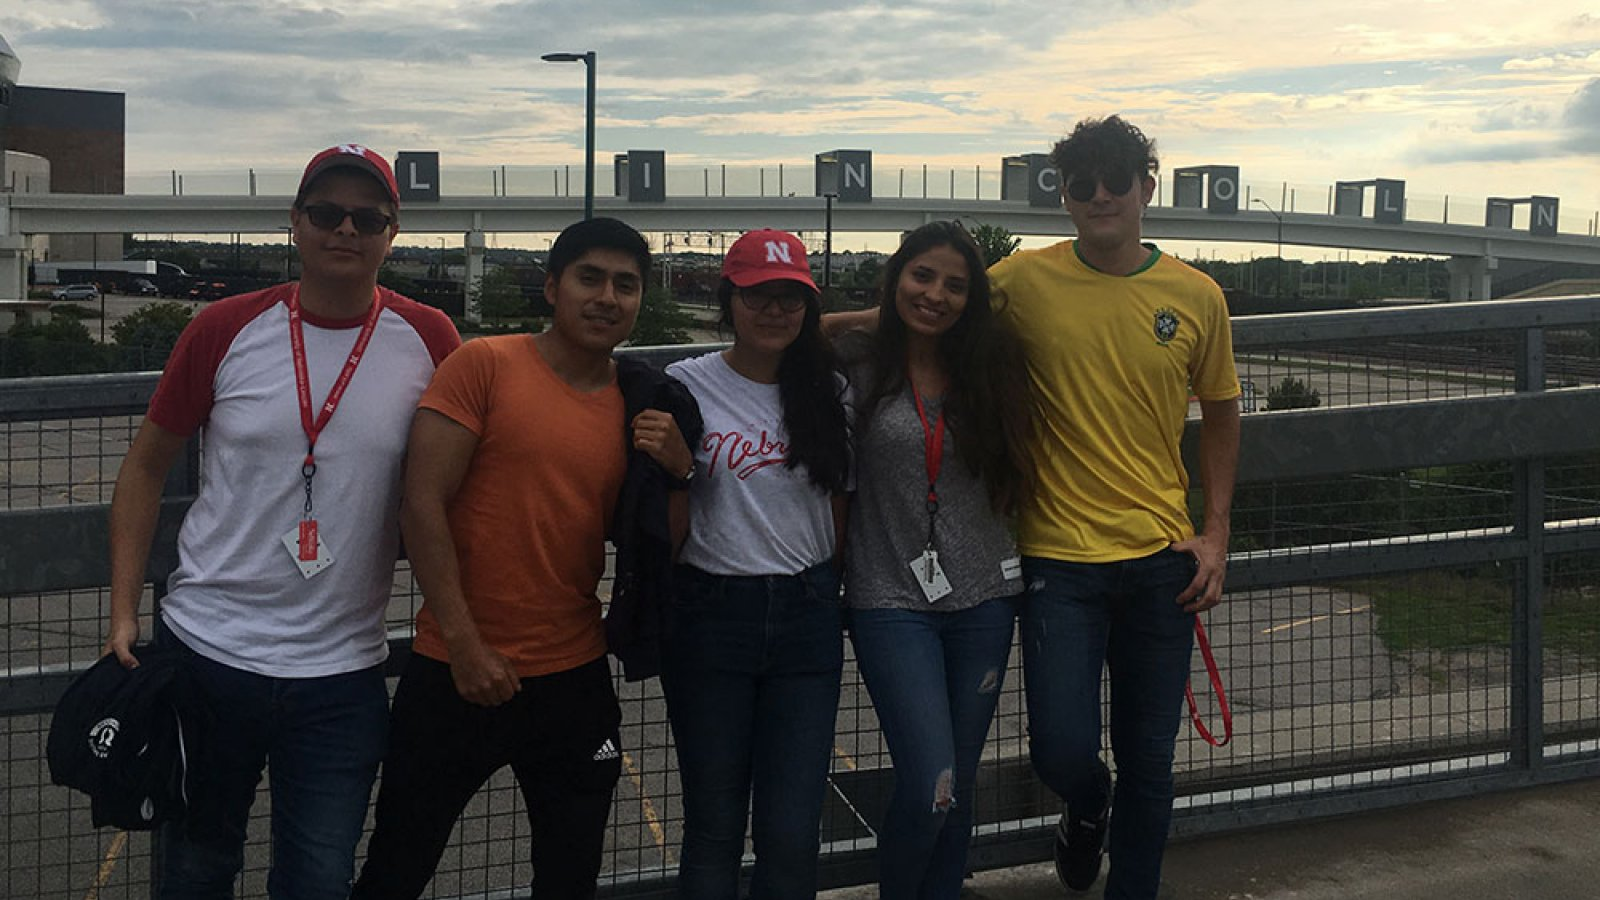 Students from Yachay Tech University in Ecuador spent 10 weeks this summer in Lincoln doing research with University of Nebraska-Lincoln College of Engineering faculty.